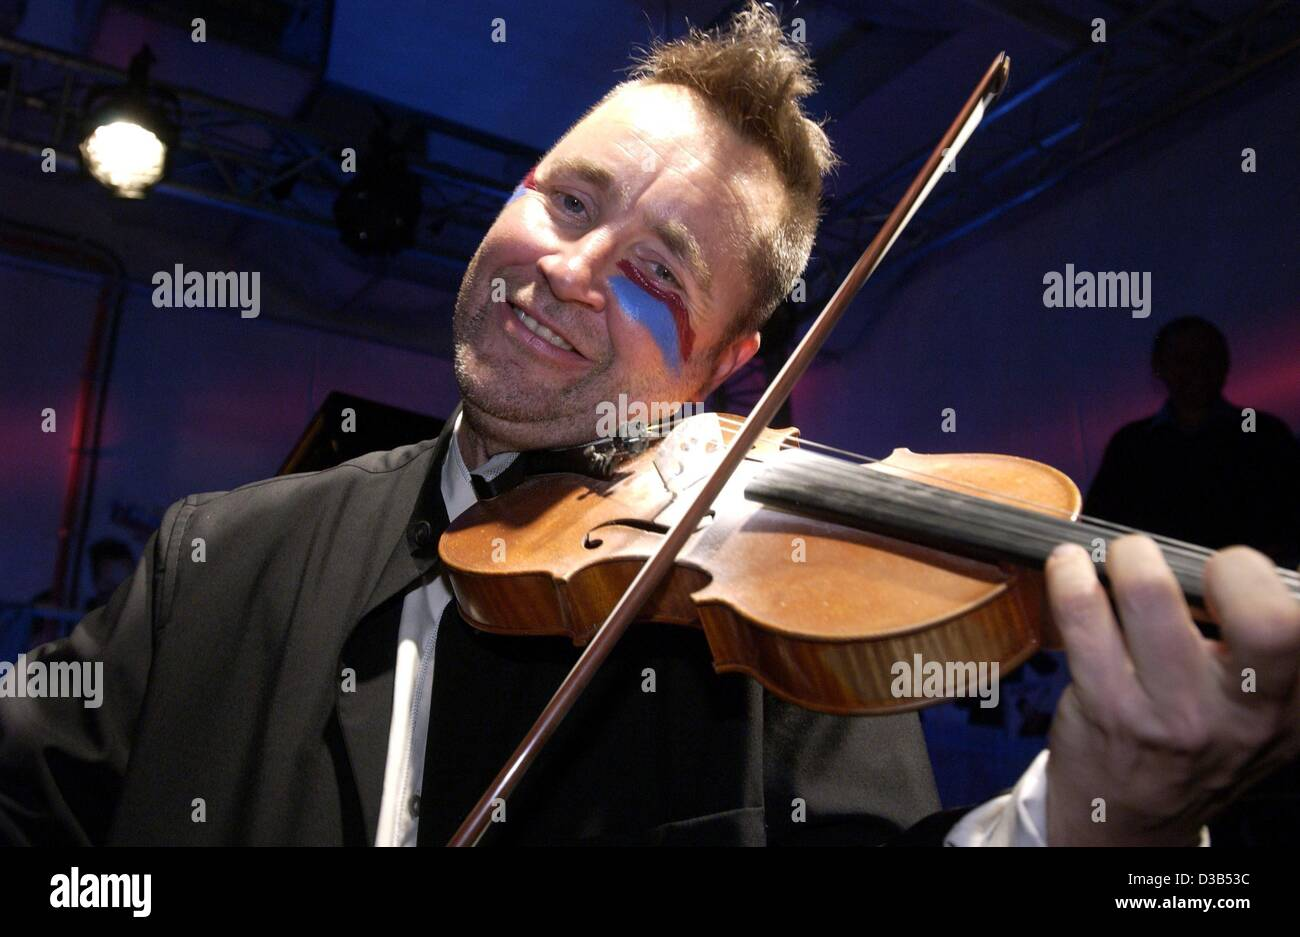 dpa) - British violin player Nigel Kennedy has painted his